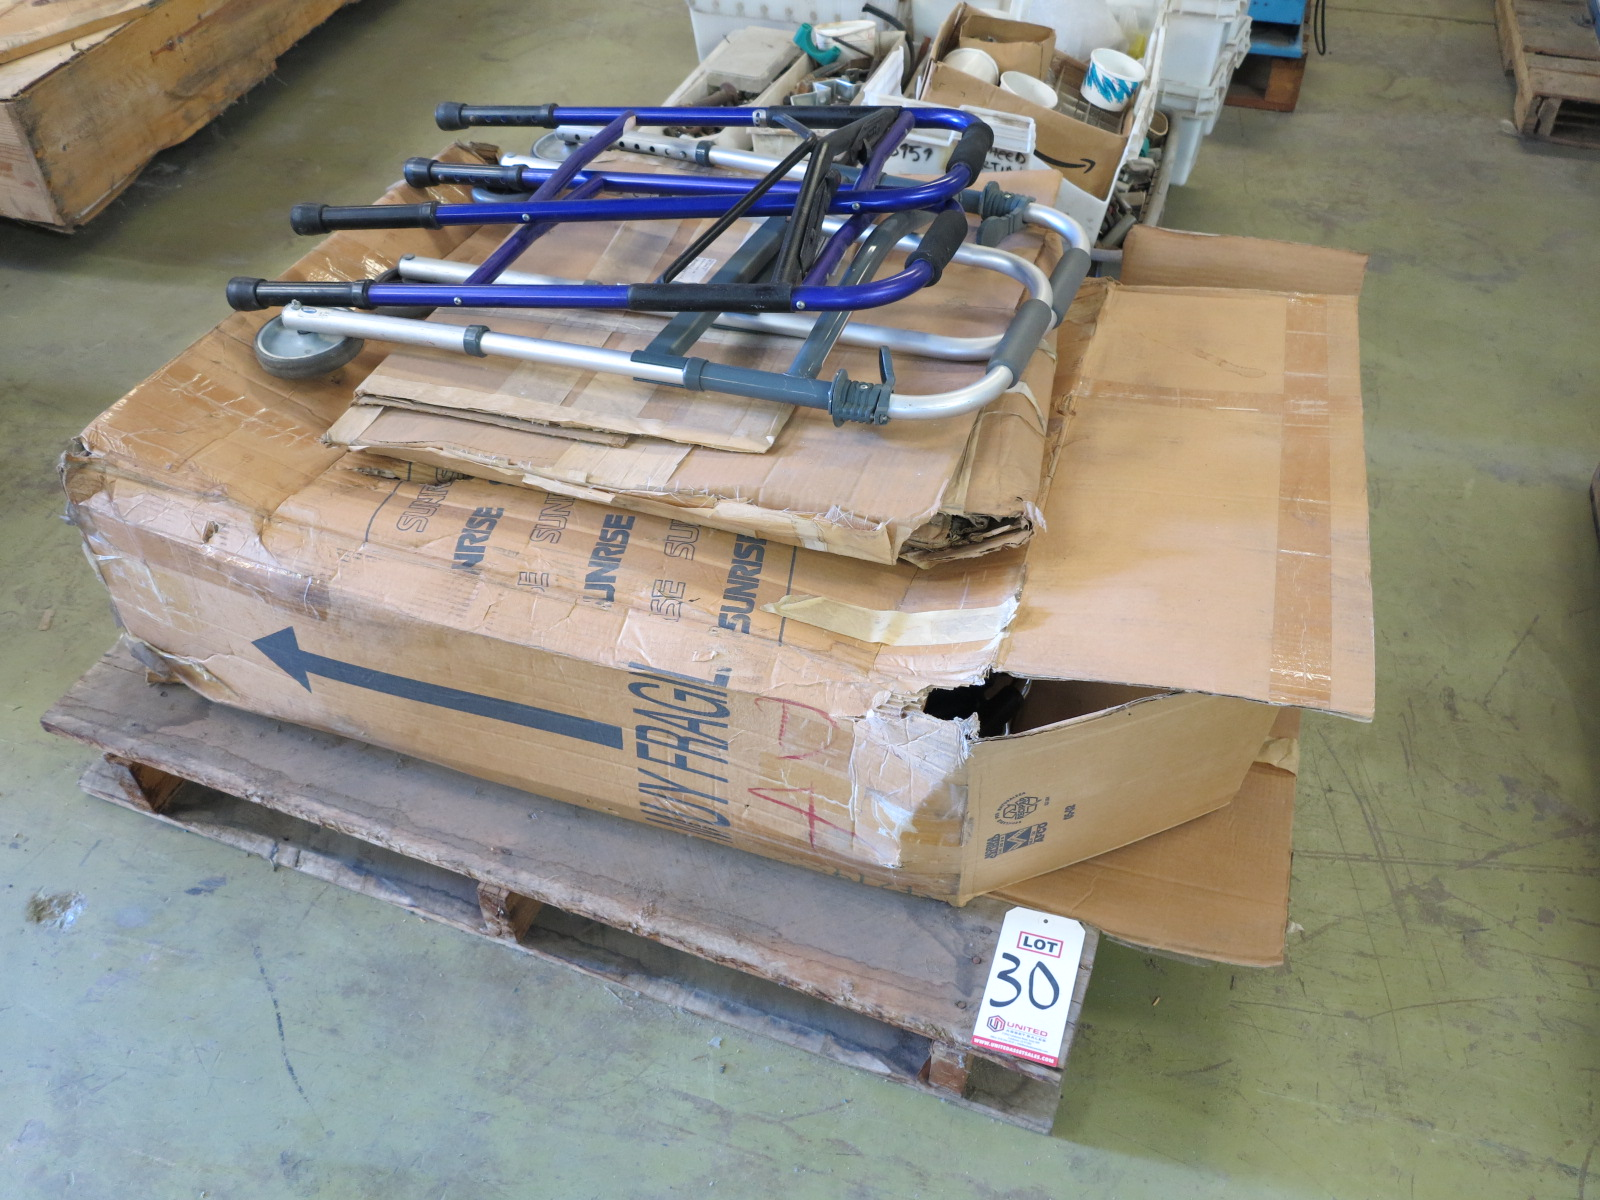 Lot 30 - LOT - PALLET W/ (1) WHEEL CHAIR AND (2) WALKERS